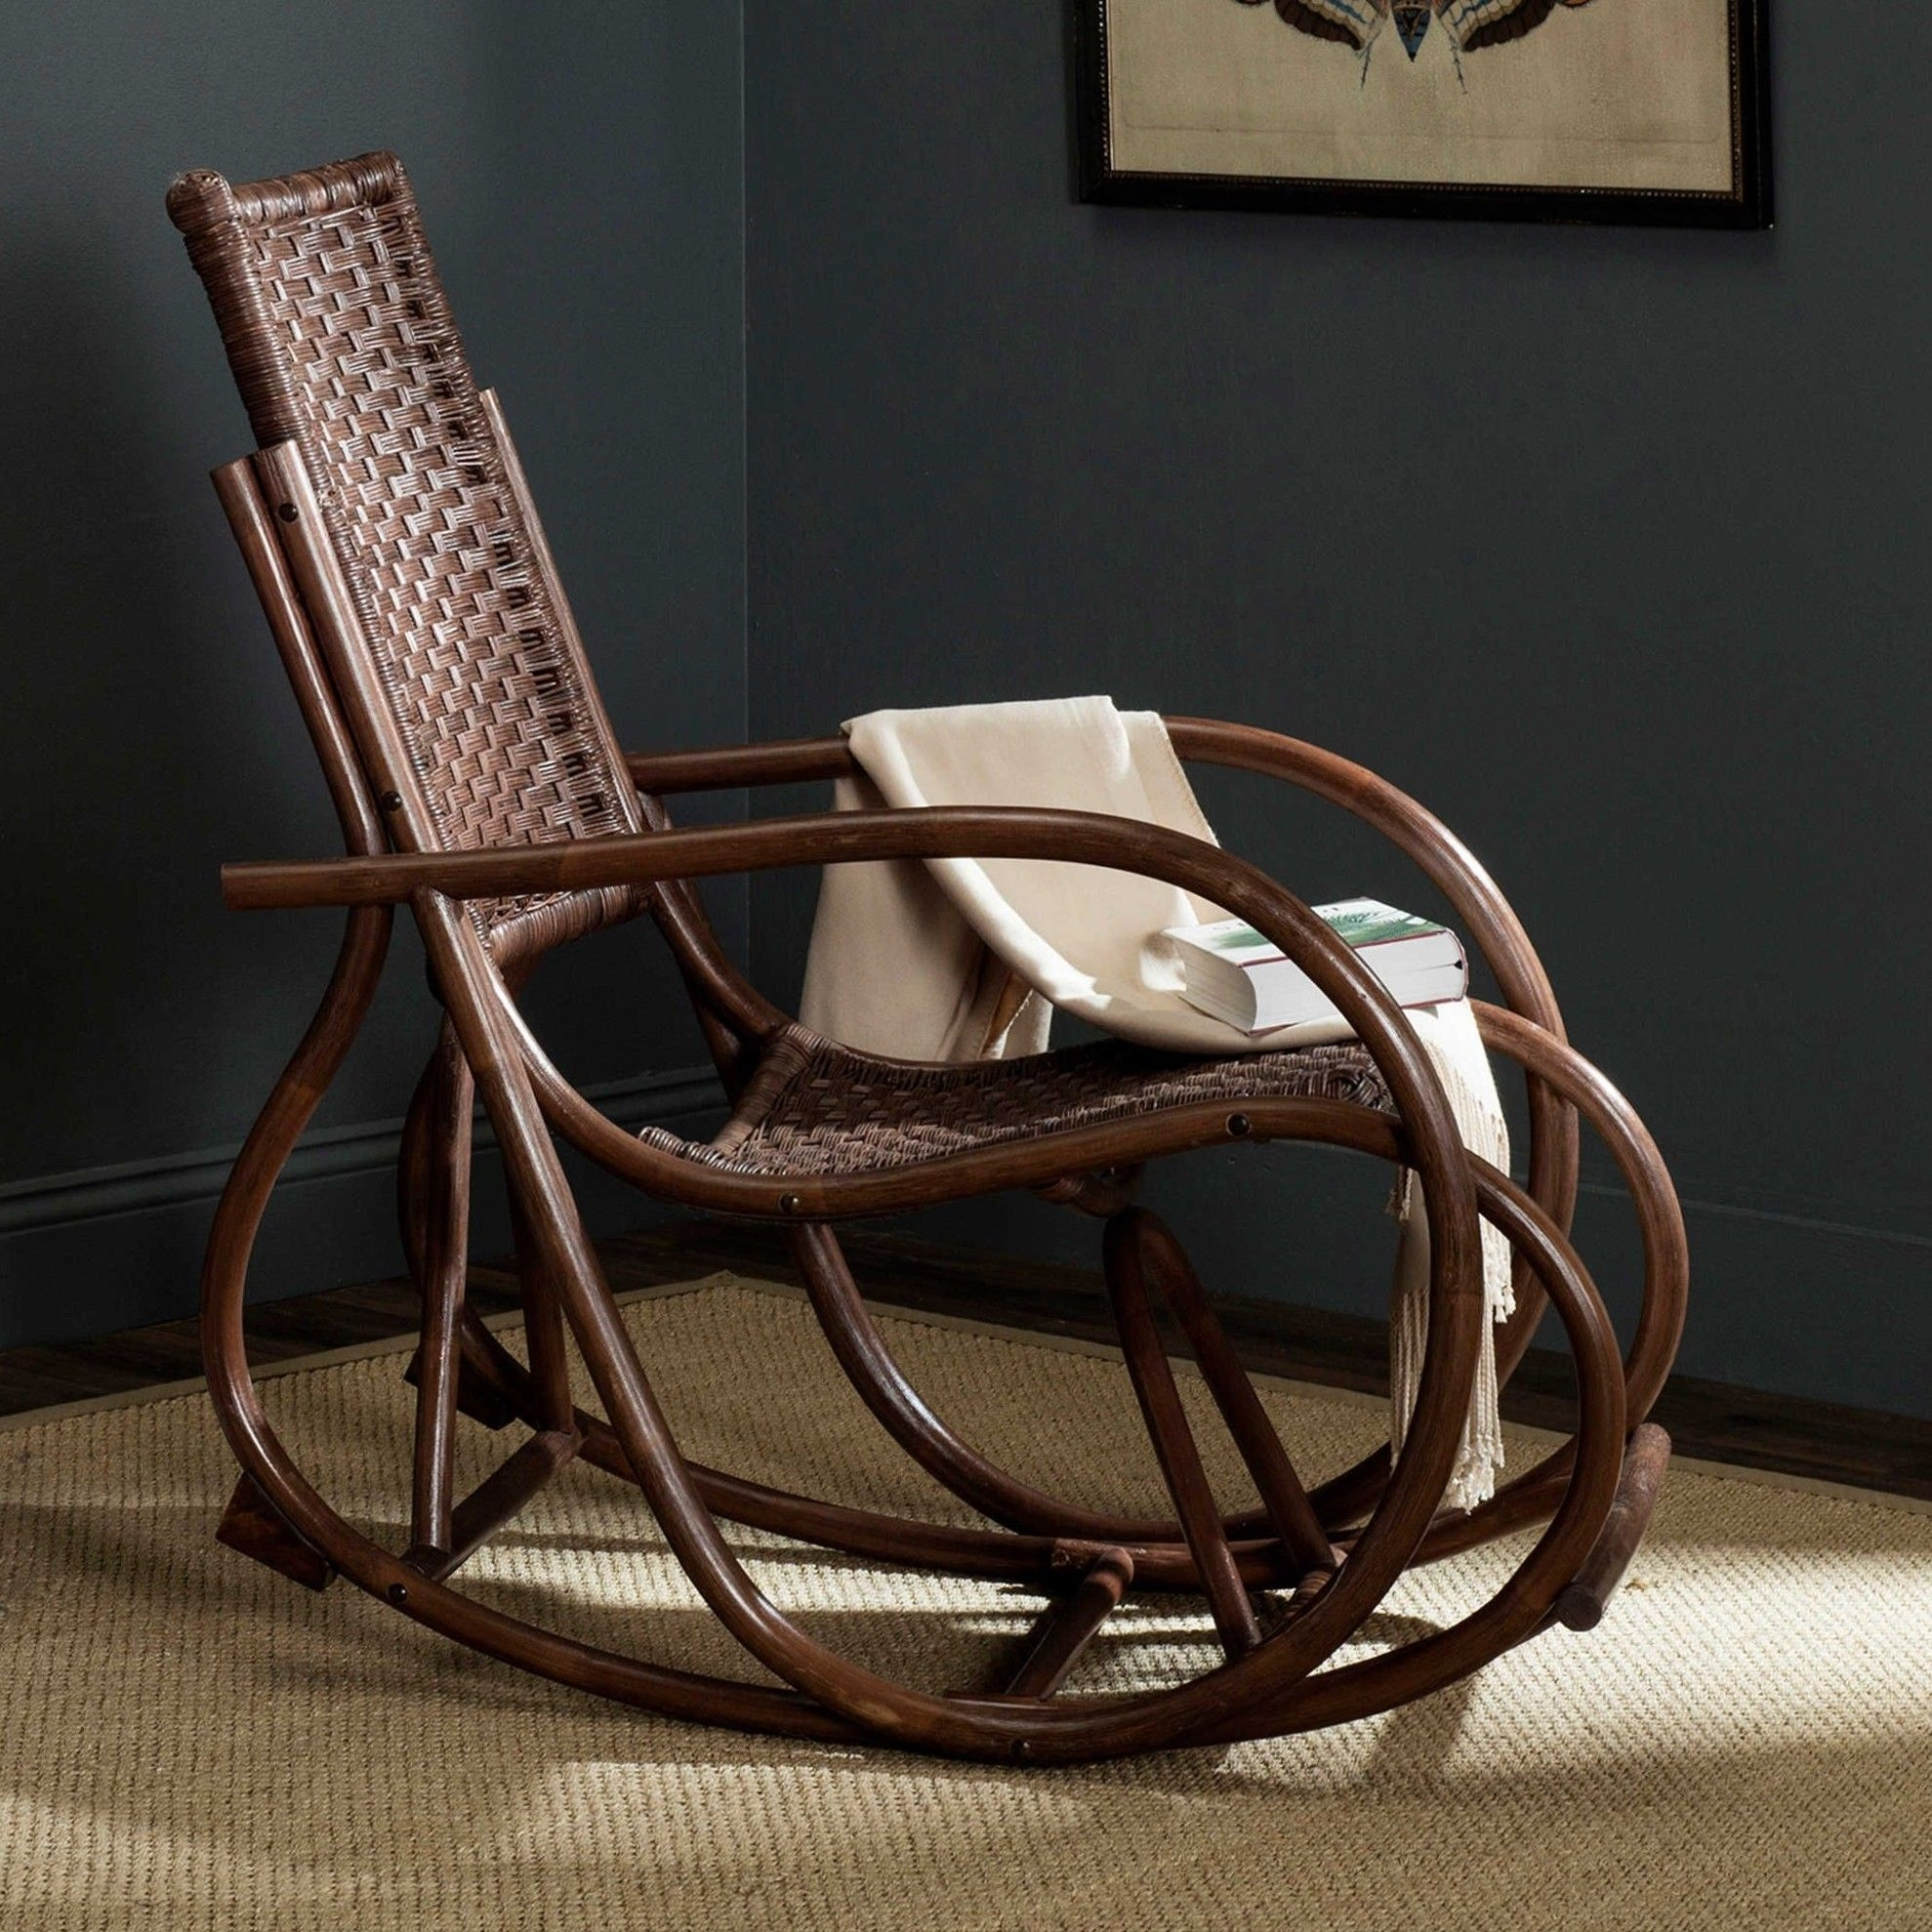 Wicker Rocking Relaxing Chair Vintage Furniture Living Room Outdoor For Vintage Wicker Rocking Chairs (#15 of 15)